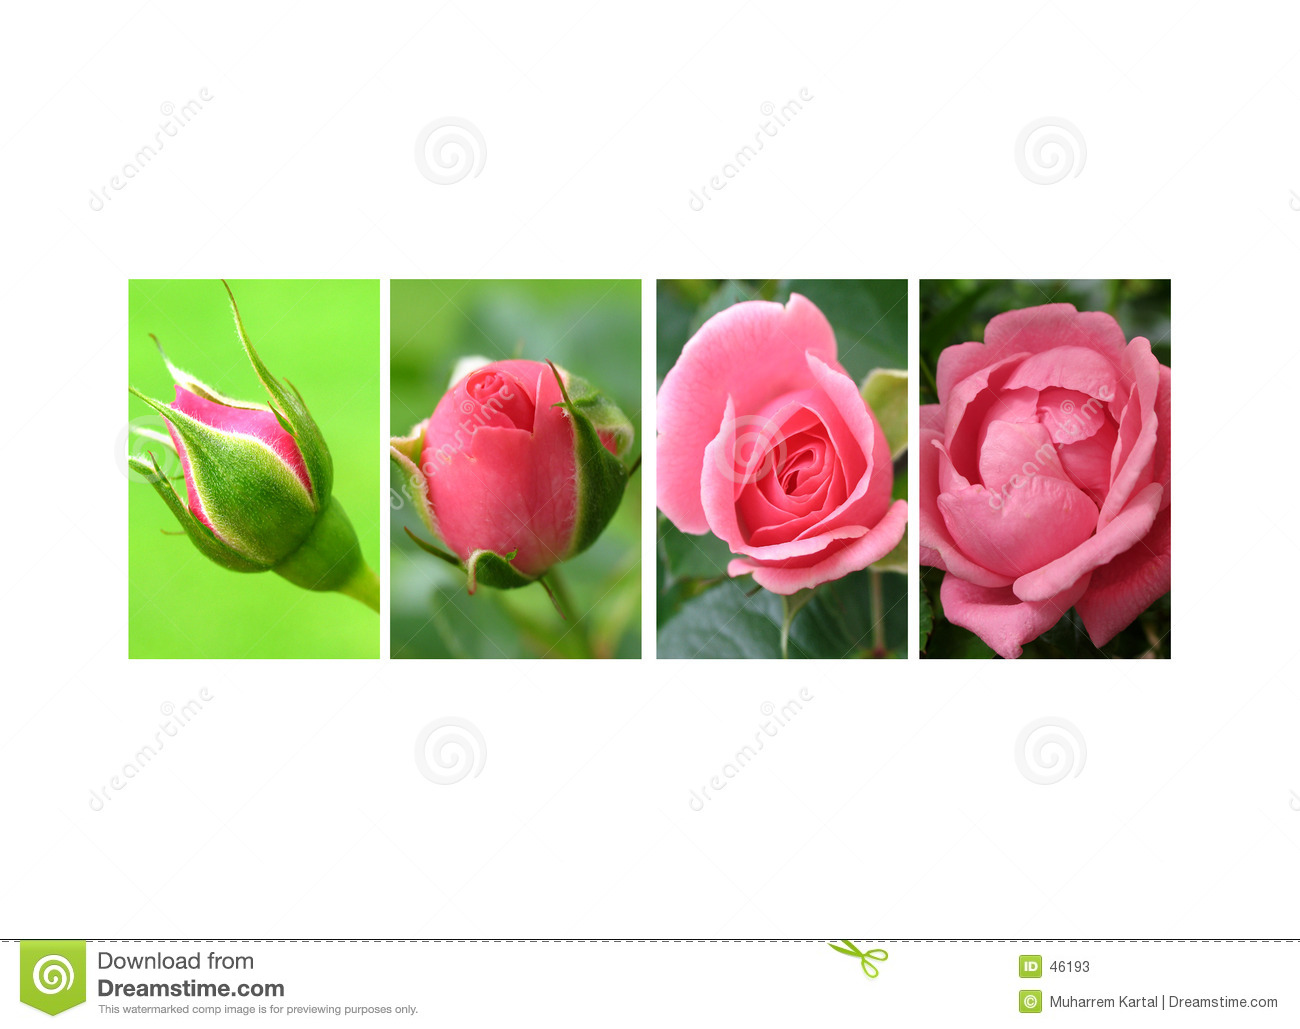 Coverage of roses